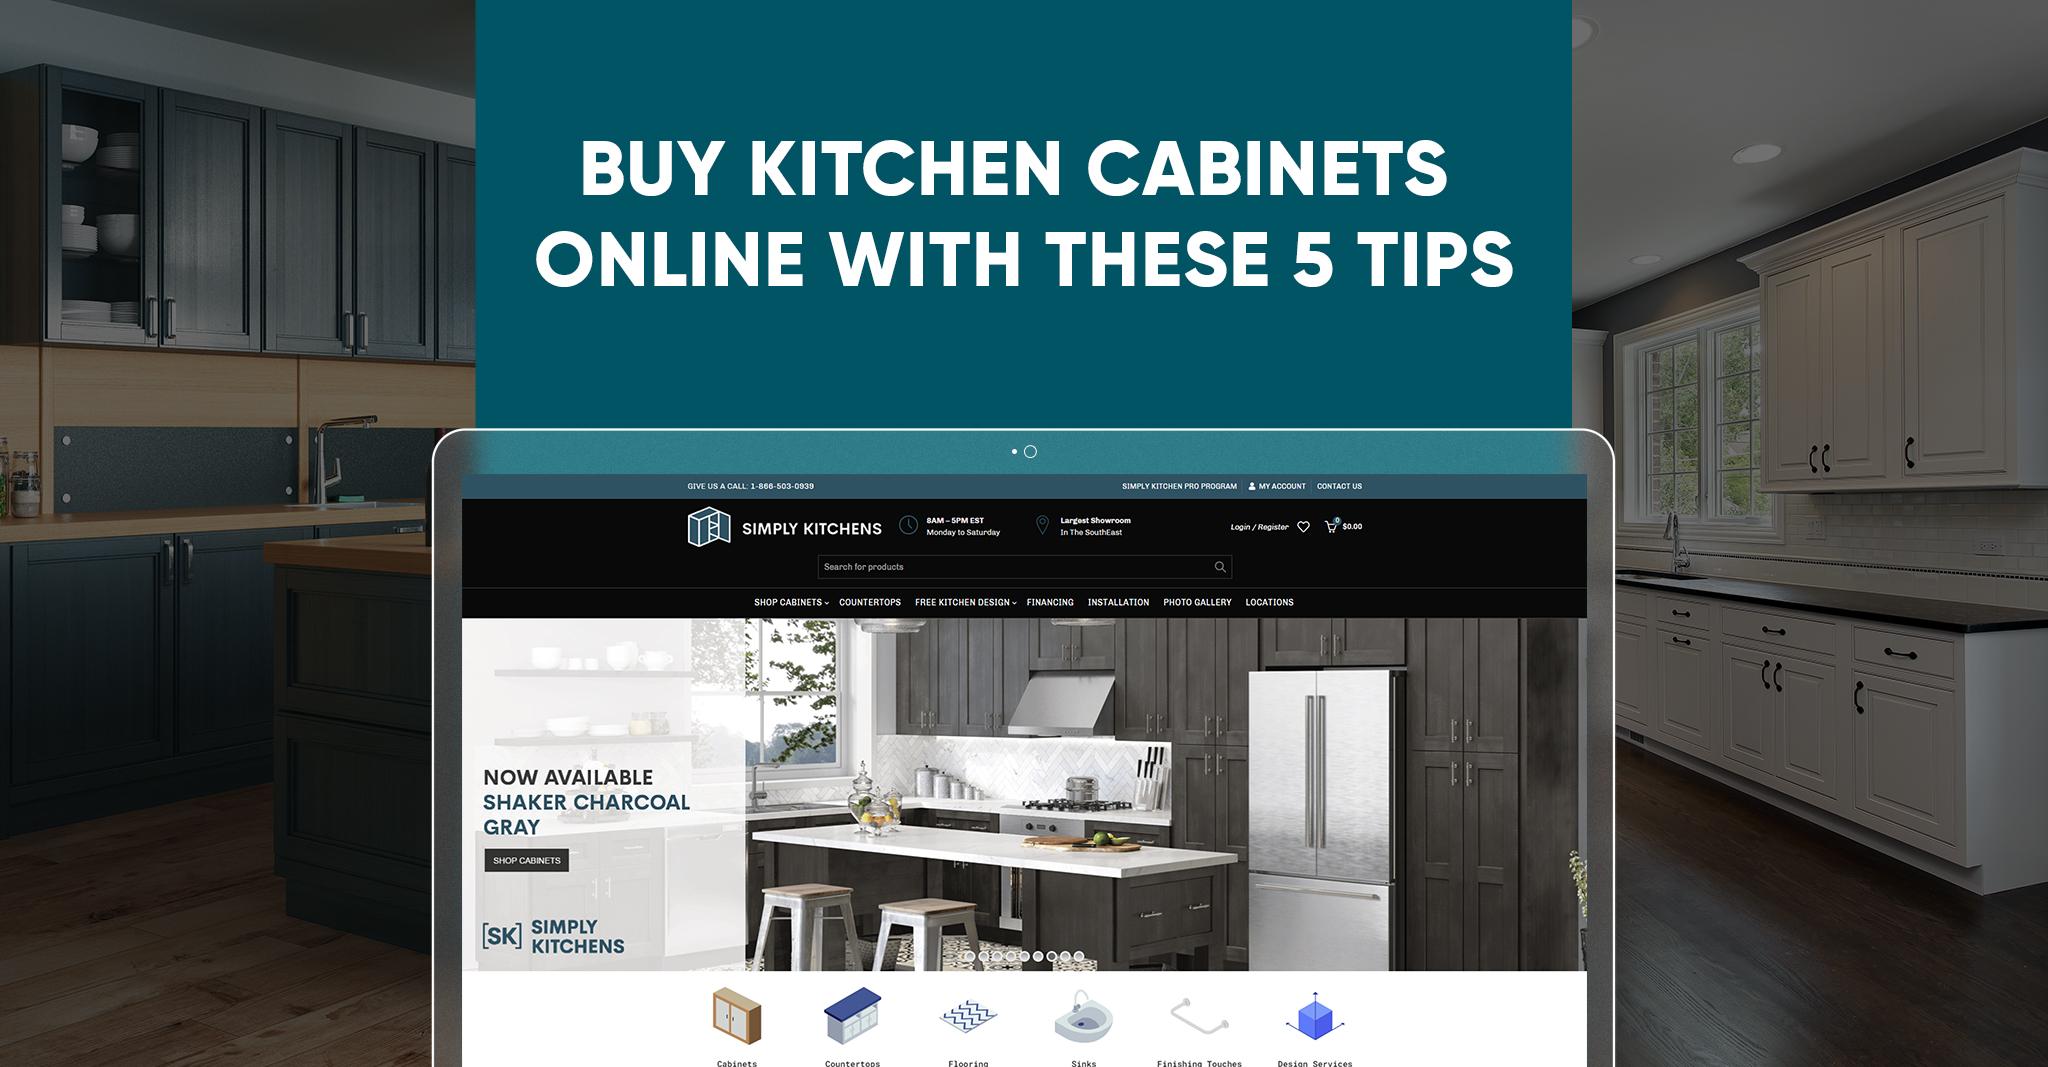 Buy Kitchen Cabinets Online with These 5 Tips